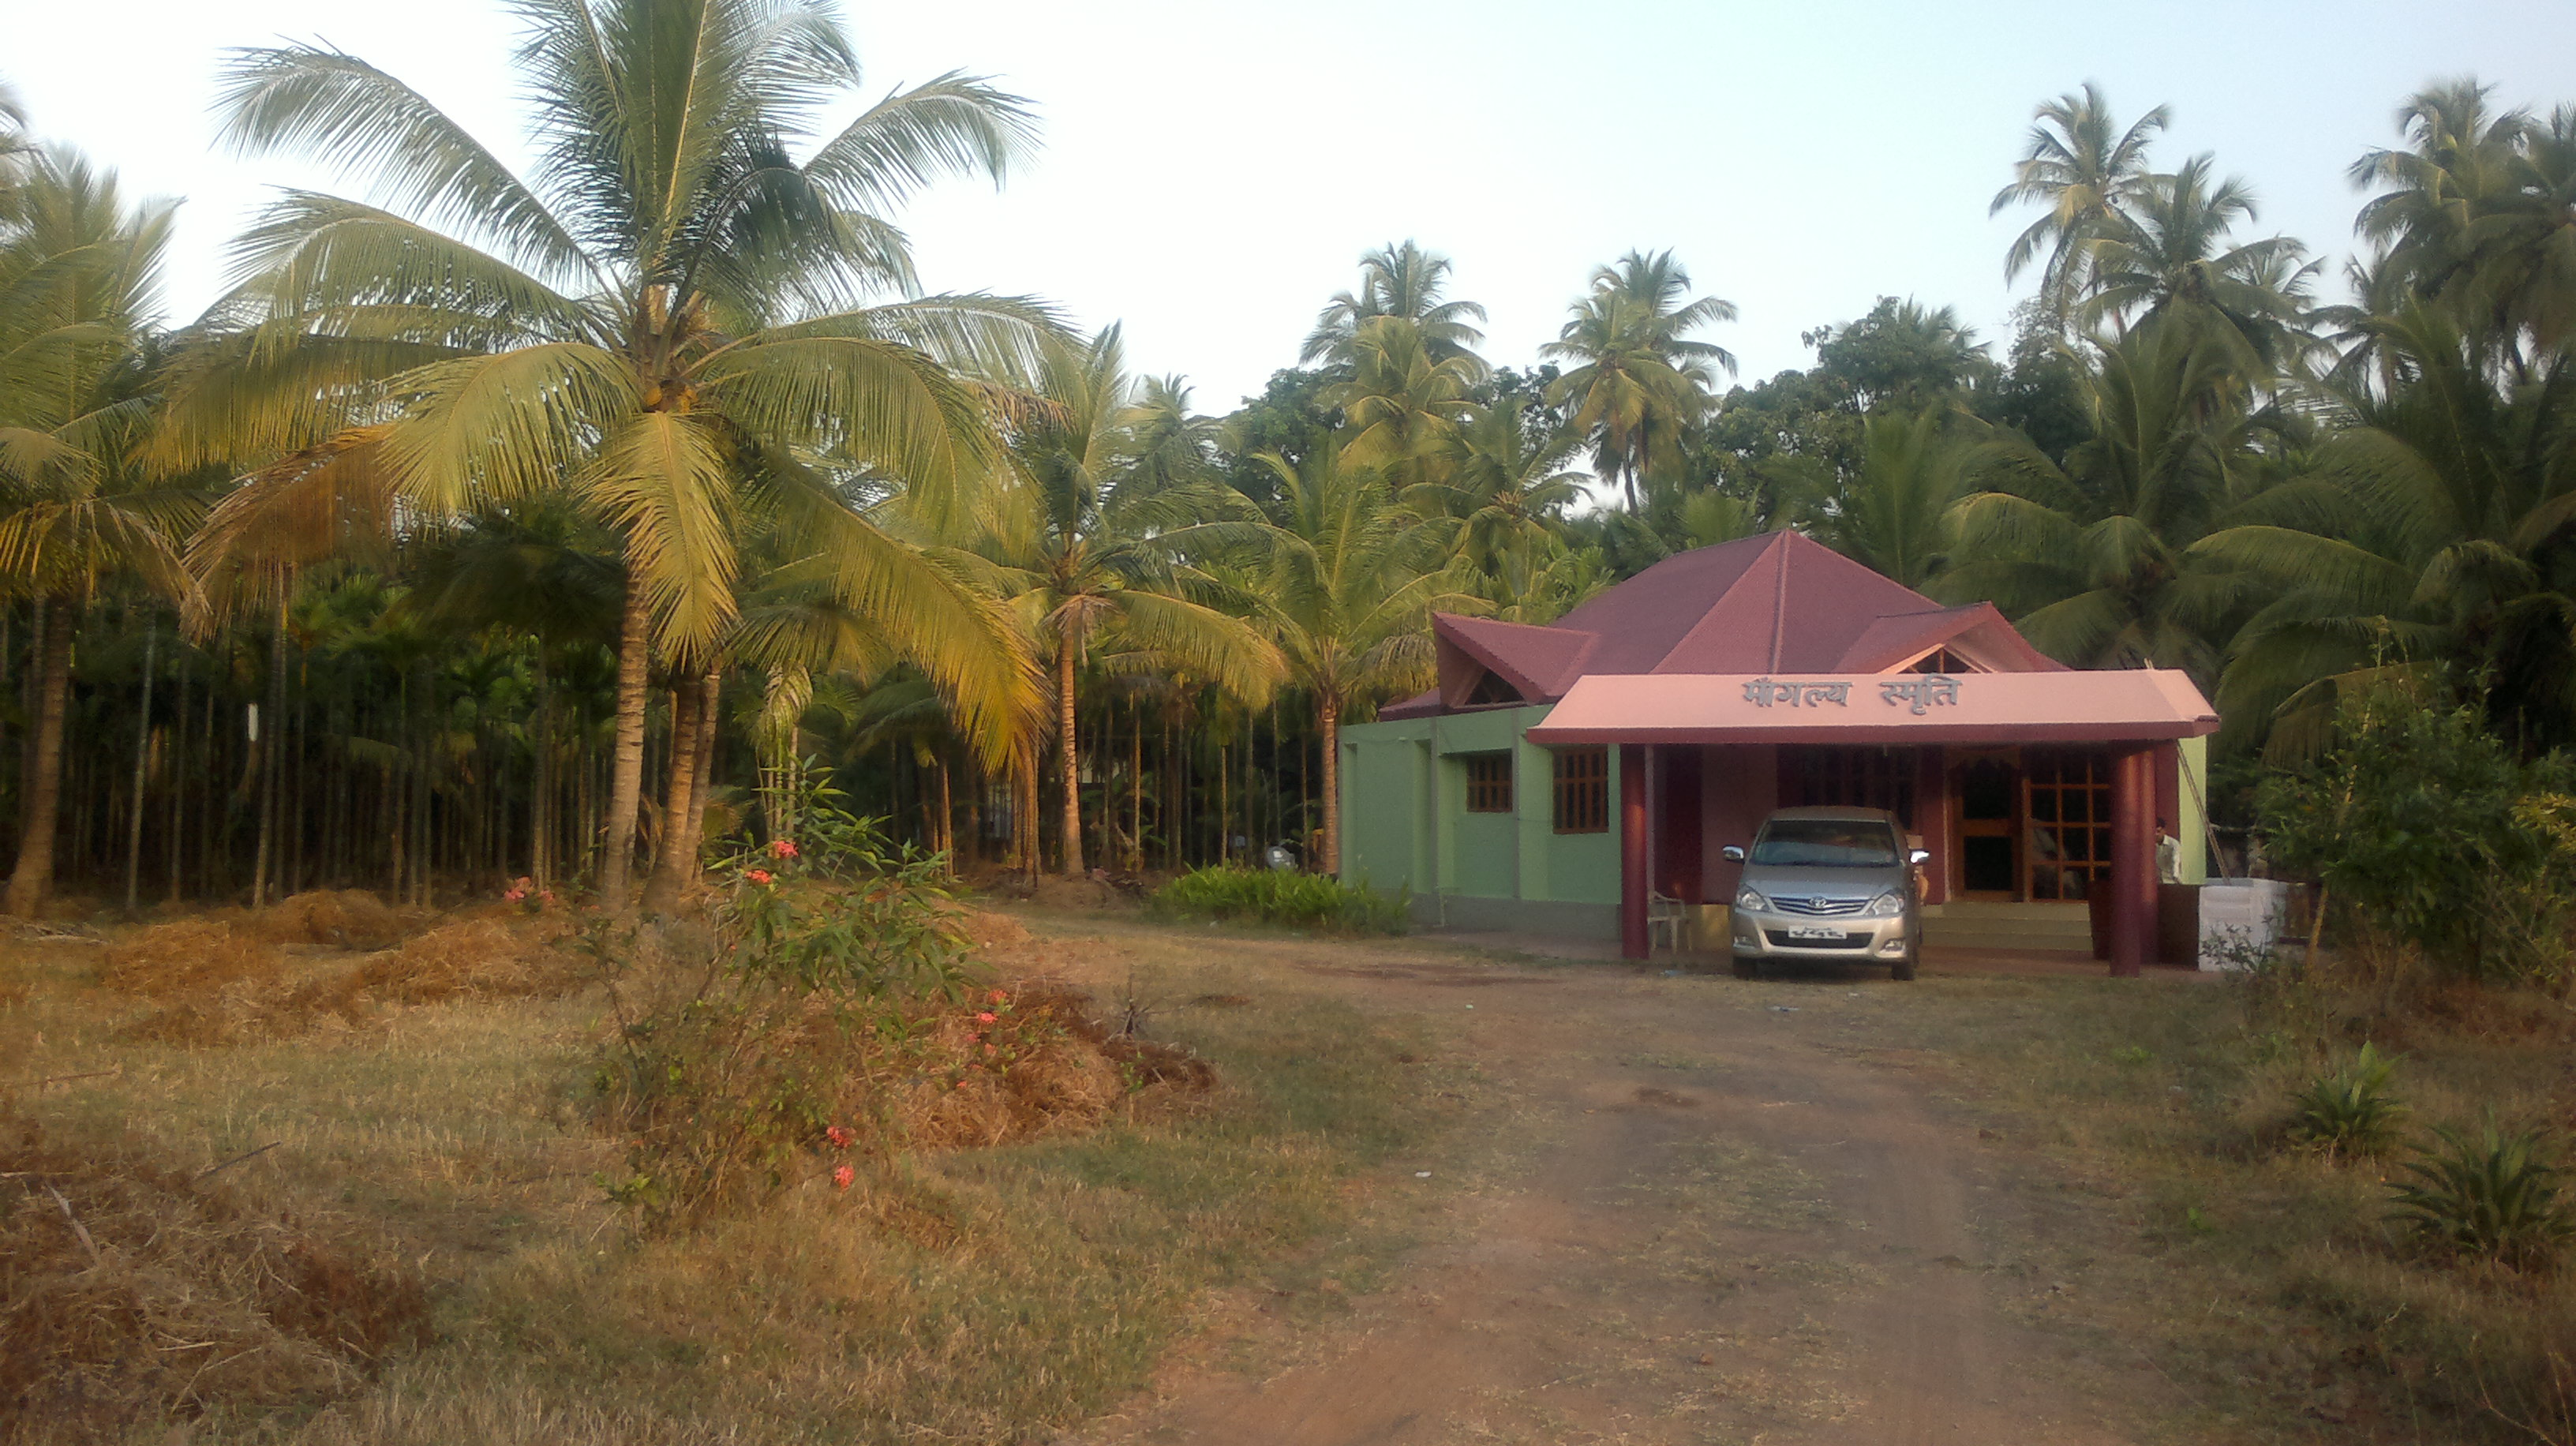 Chavan Agro Eco Tourism 2k away from Harihareshwar Beach Resort